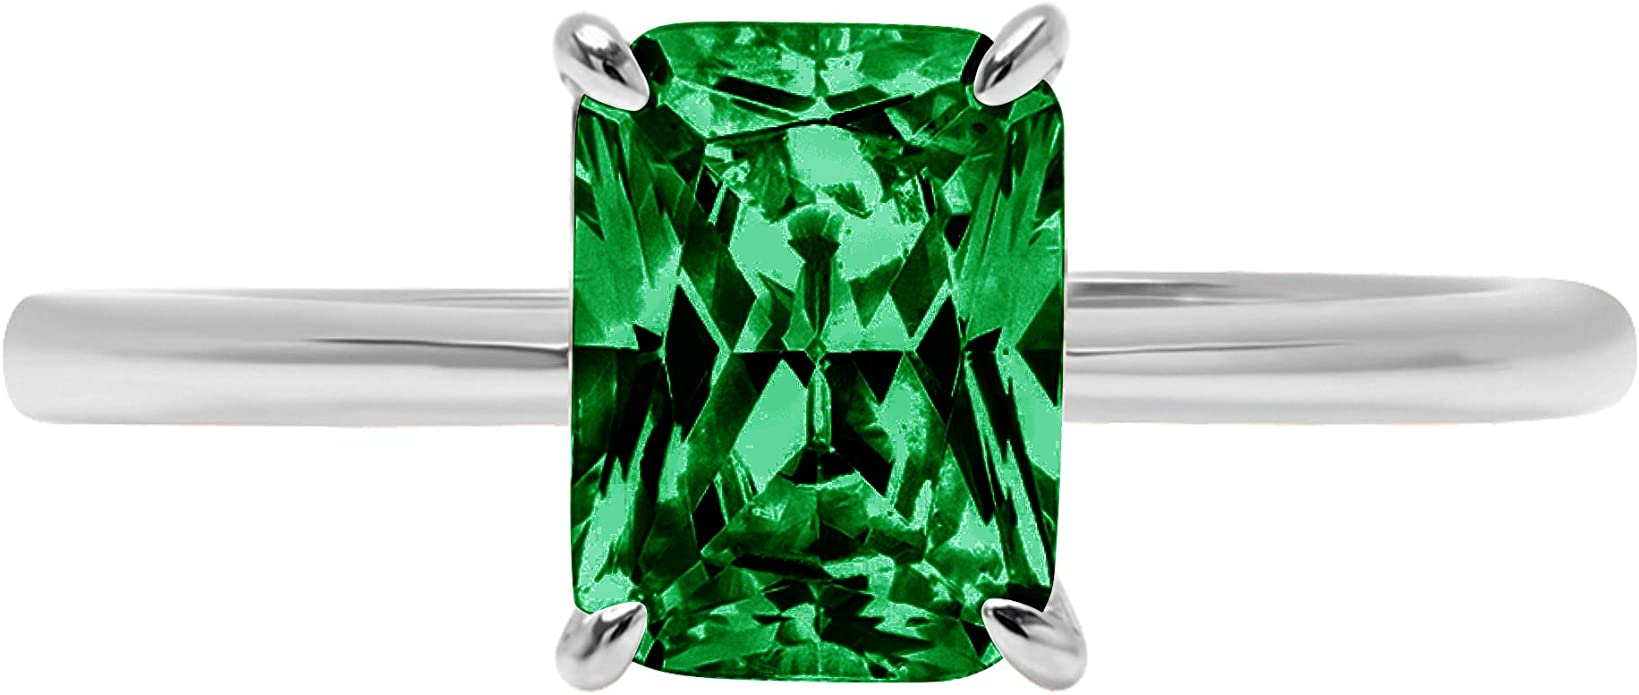 SGL Certified Solitaire Gemstone Ring Wedding Bridal Statement Promise Ring Minimalist Beaded Engraved Ring 0.52 Ct Oval Shape Emerald Gold Ring